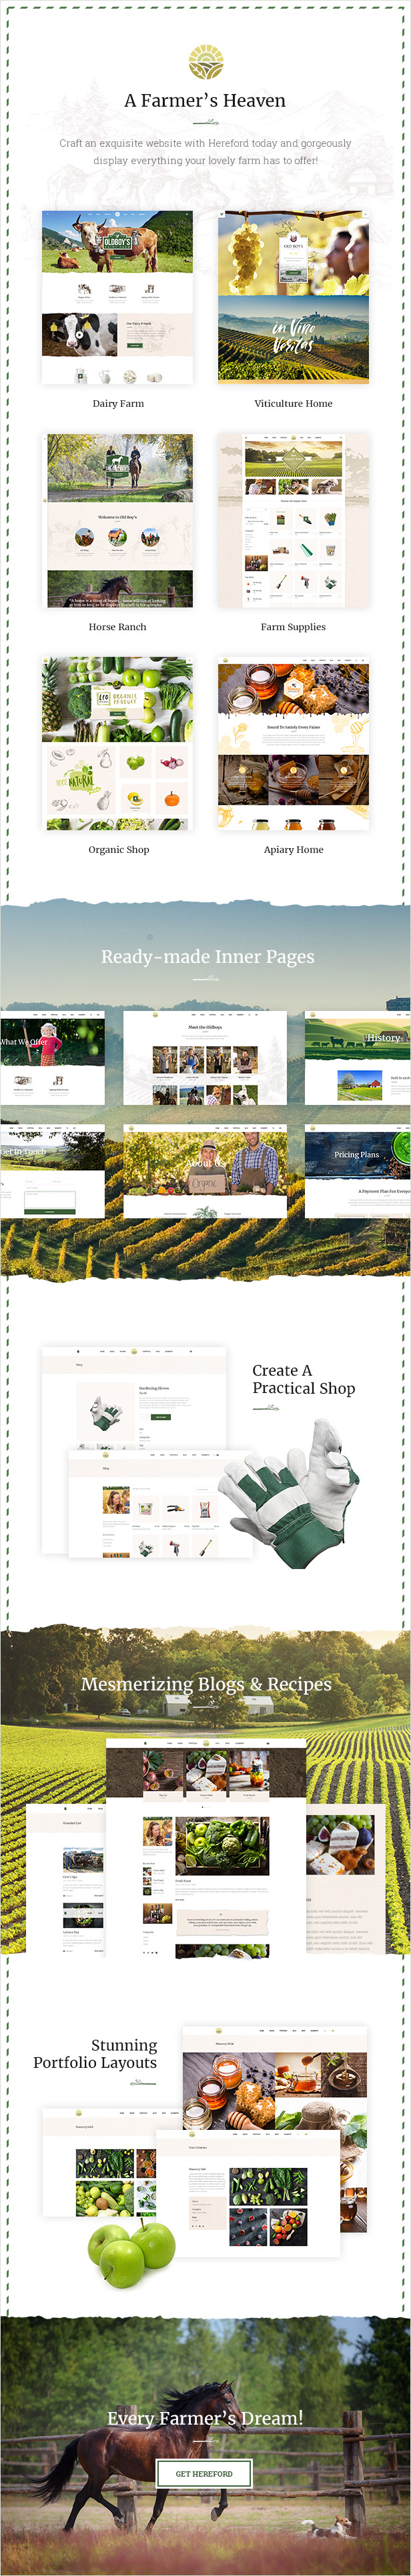 WordPress theme Hereford - An Agriculture and Organic Food Theme (Food)